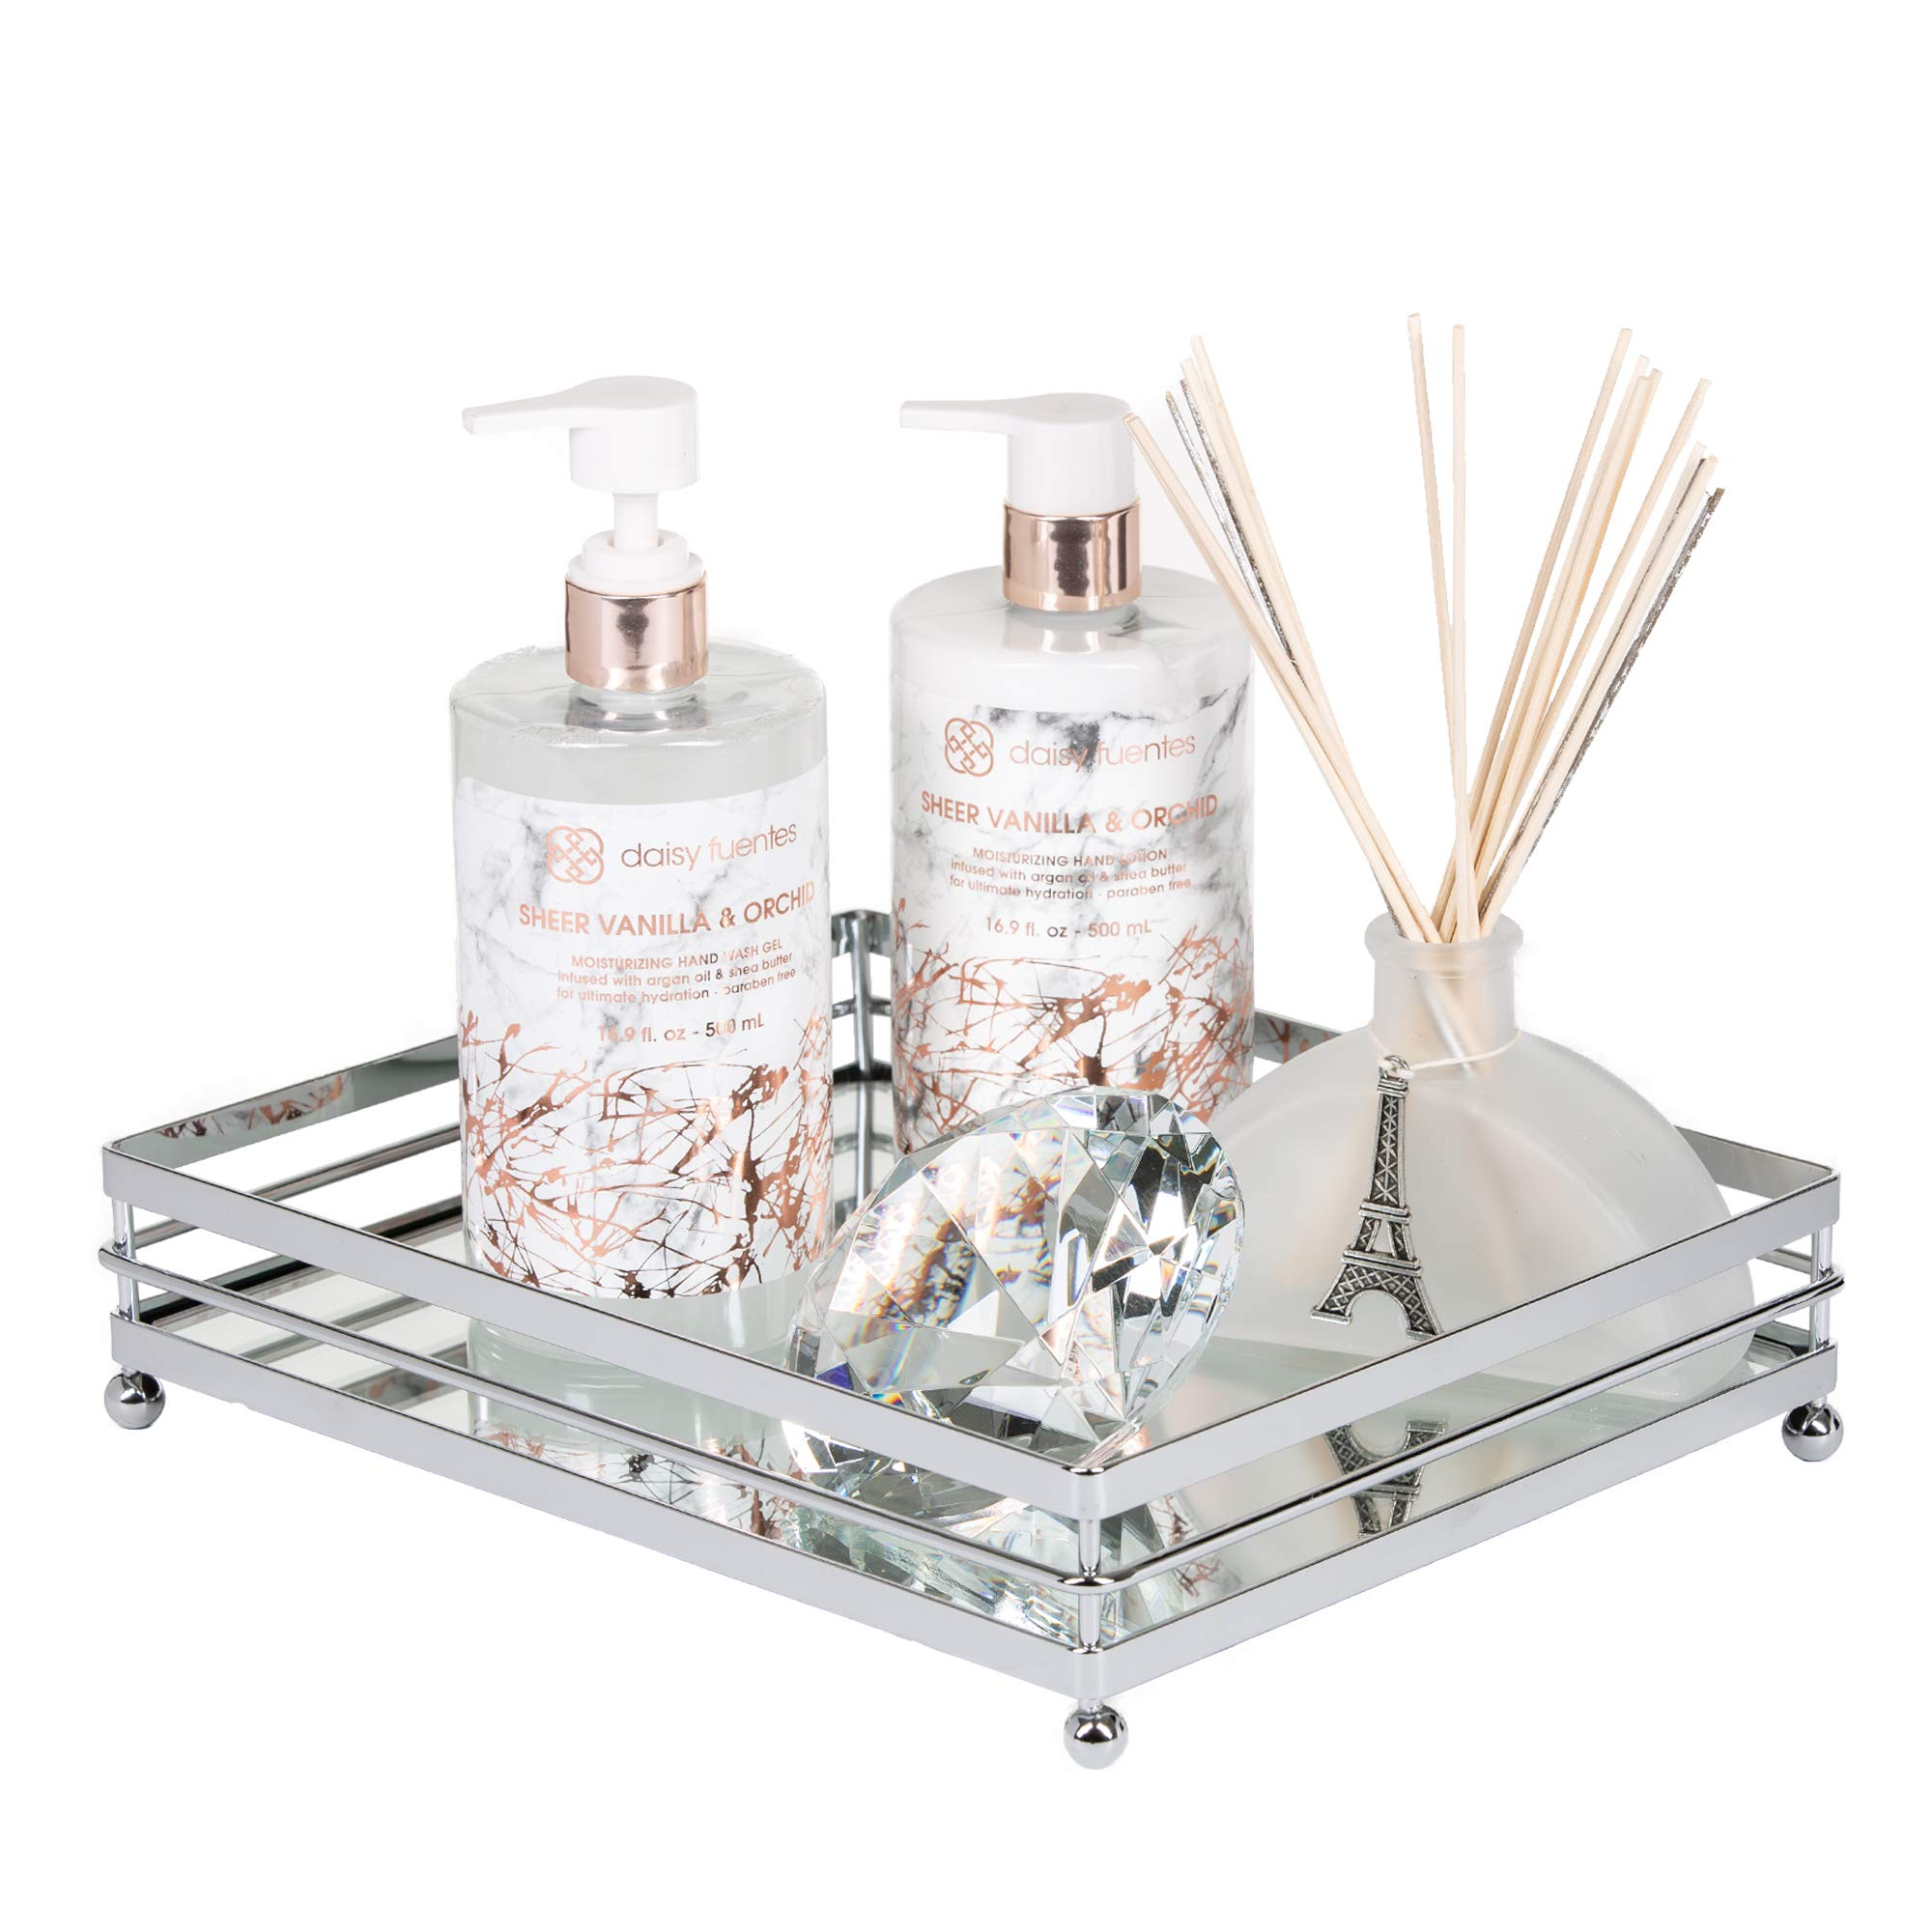 Vnesse Decorative Mirror Tray Mirror Perfume Glass Vanity Jewelry Serving Tray Silver Classic Accessories for Dresser & Bathroom 10.6'' x 8.6'' by Vnesse (Image #1)